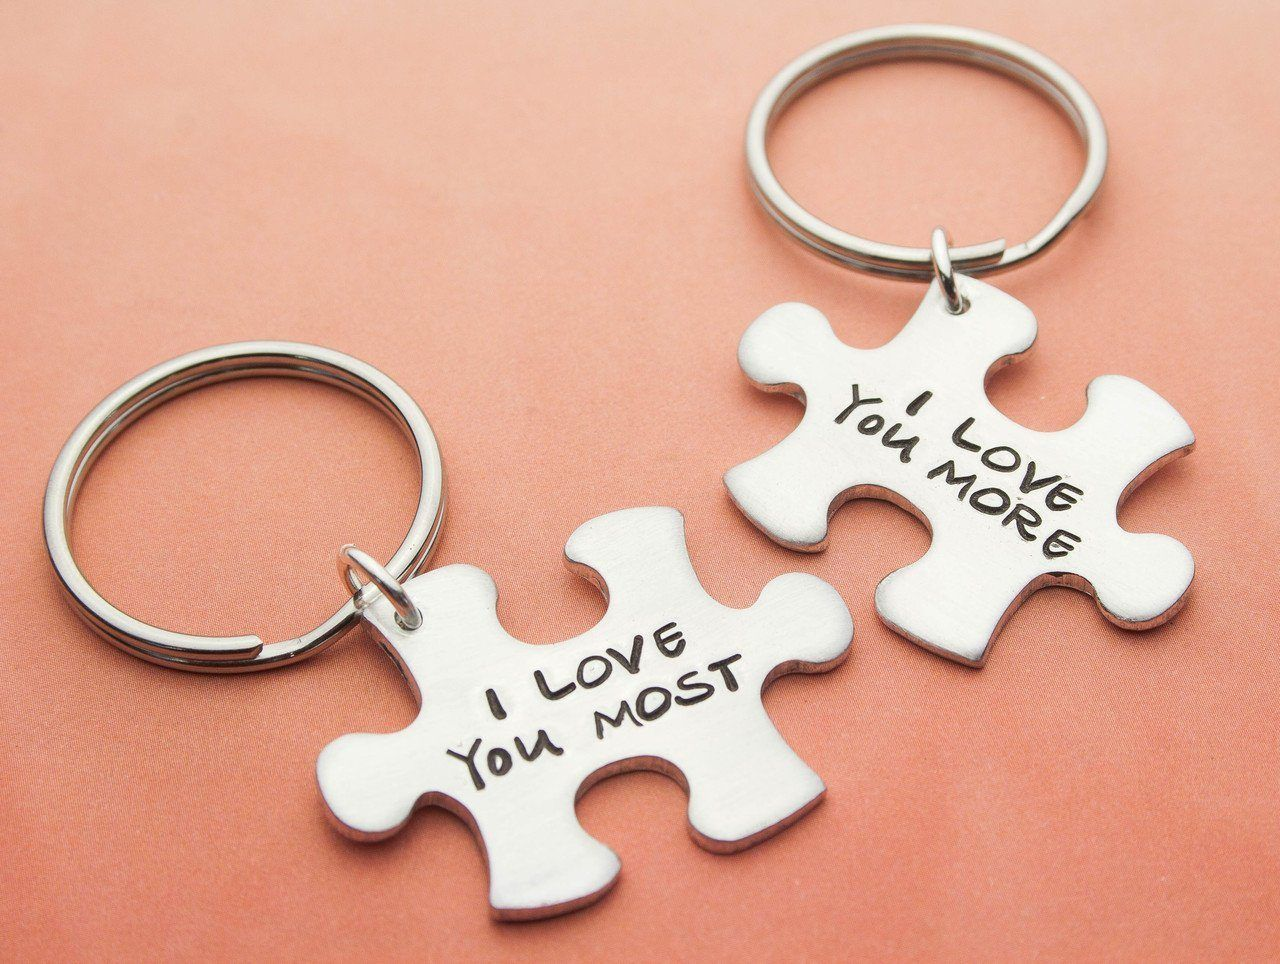 Description A cute set of keychains to share - one for each of you. Each keychain is hand stamped wi...